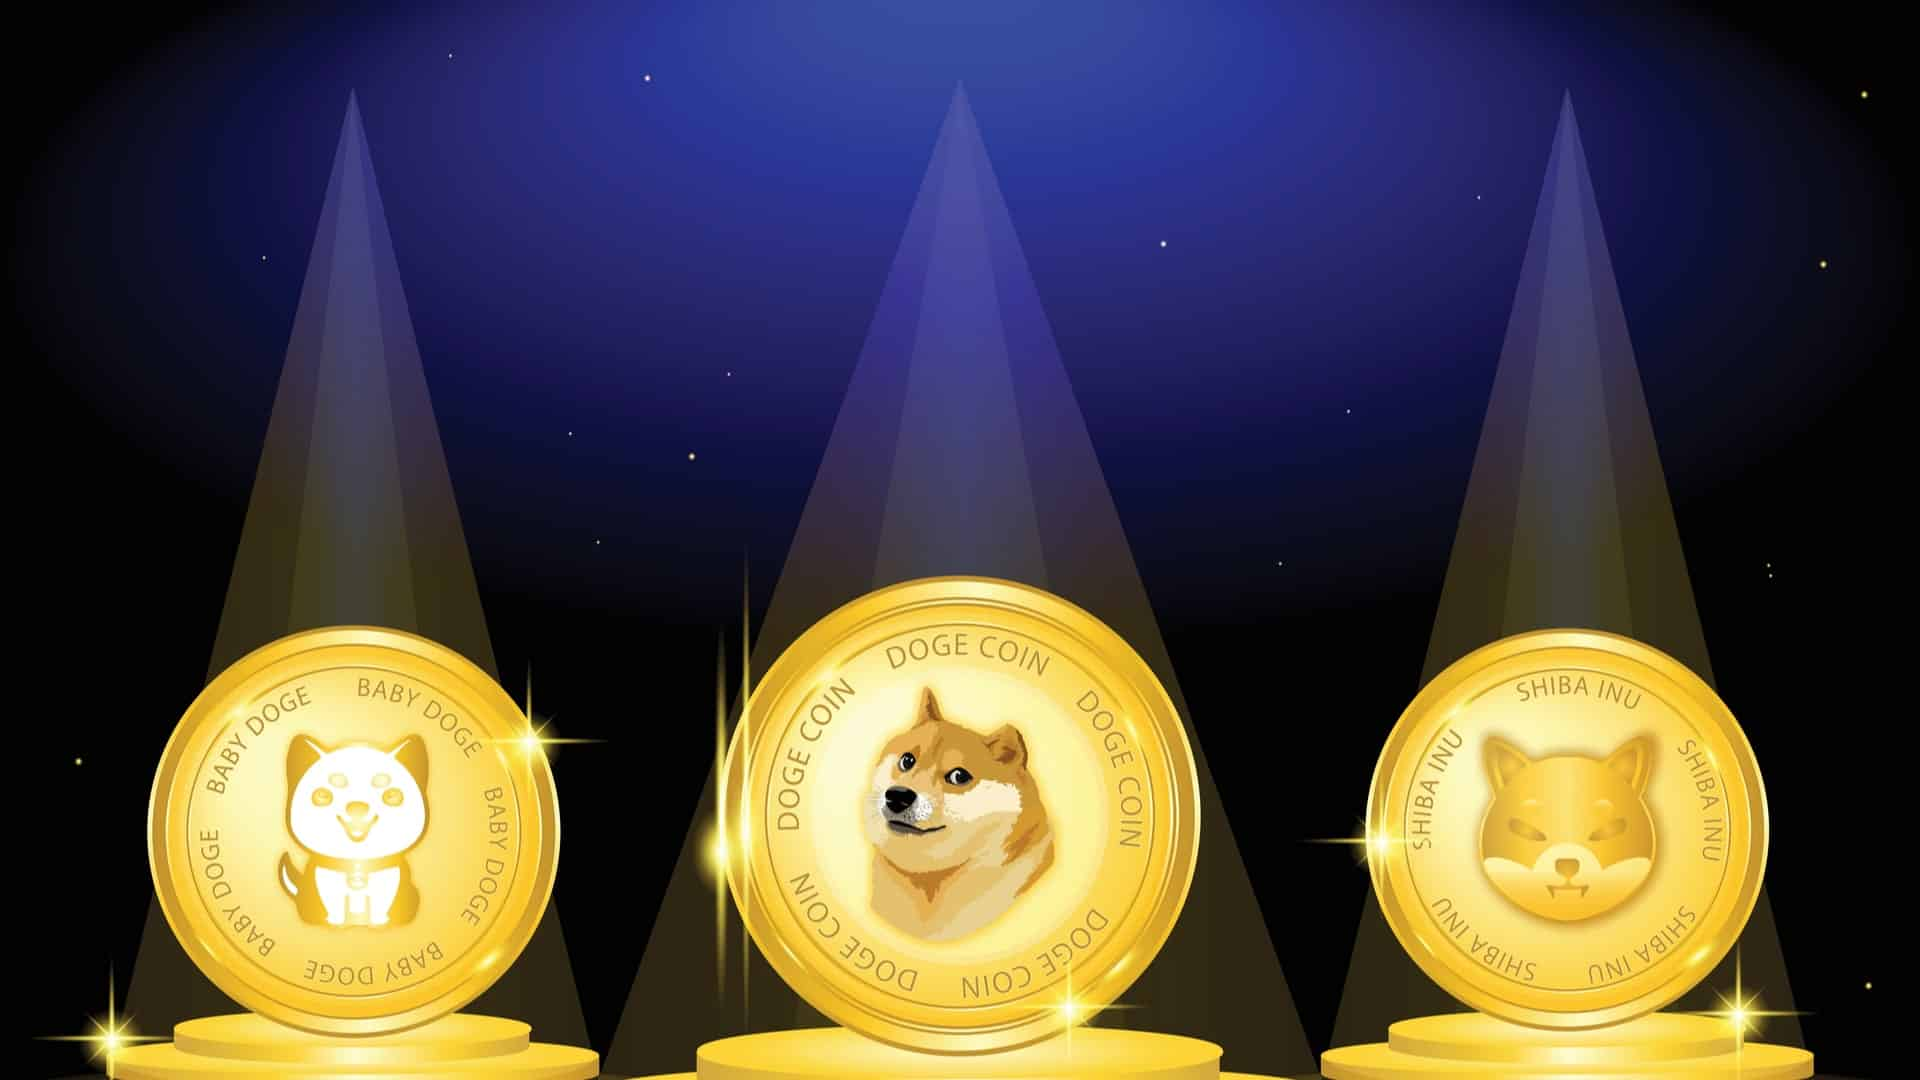 Dogecoin and Shiba Inu stagnate while Baby Doge coin and Dogelon Mars rocket!